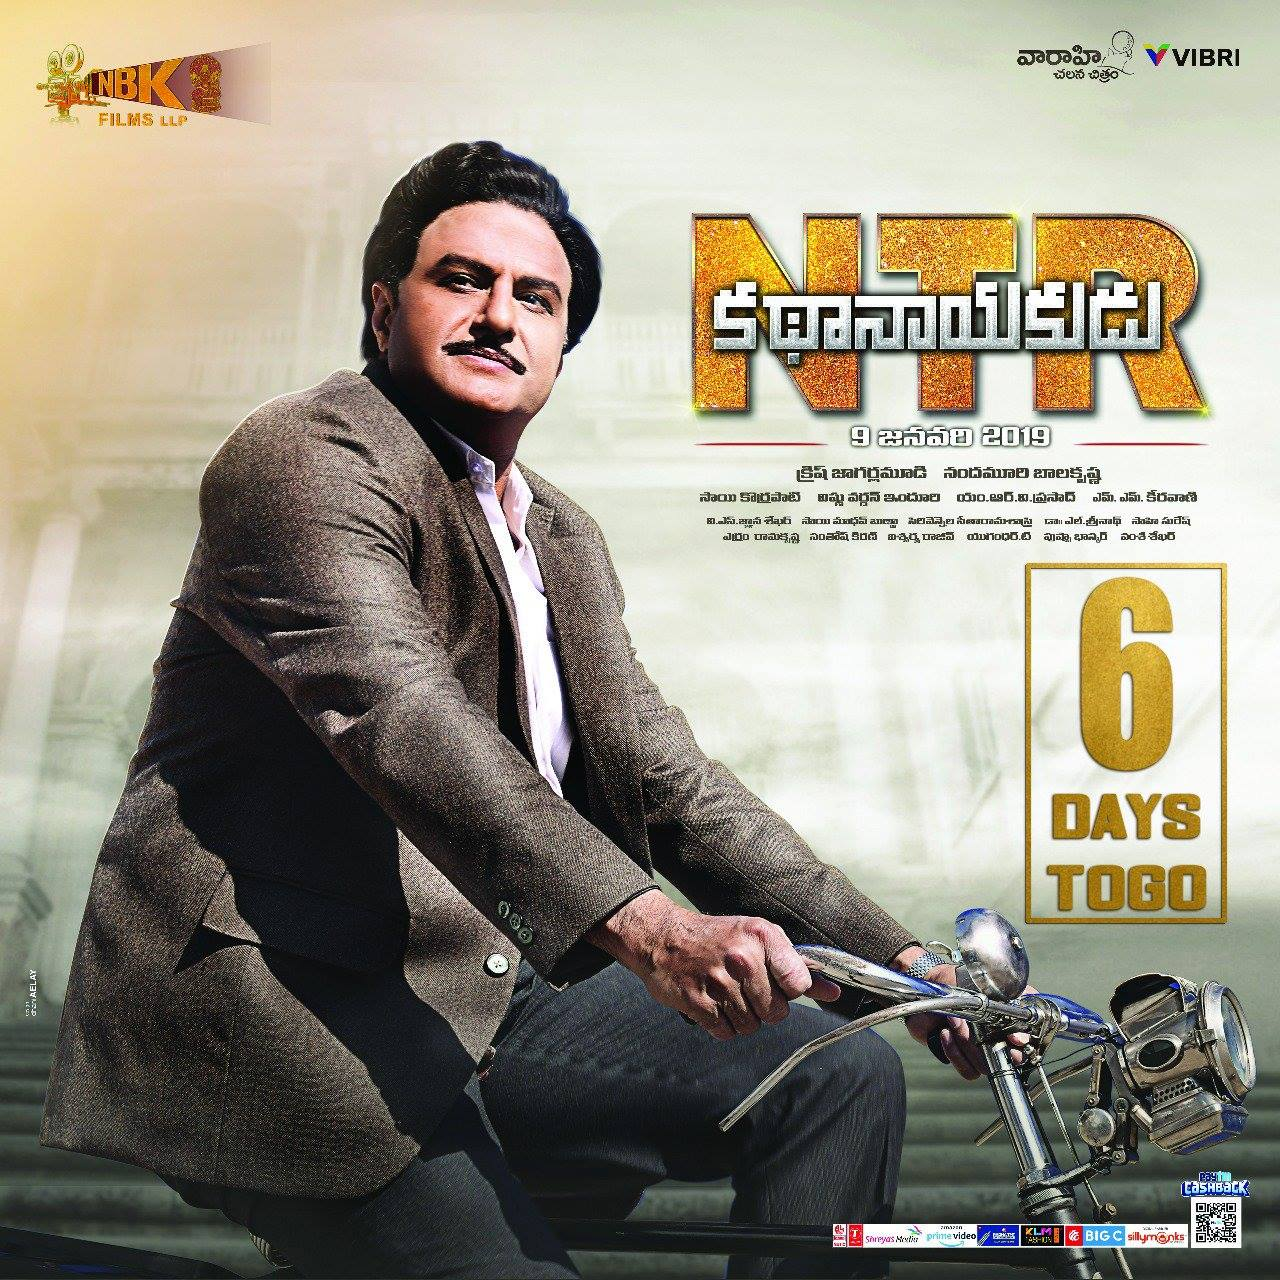 NTR KathaNayakudu 6 days to go Poster